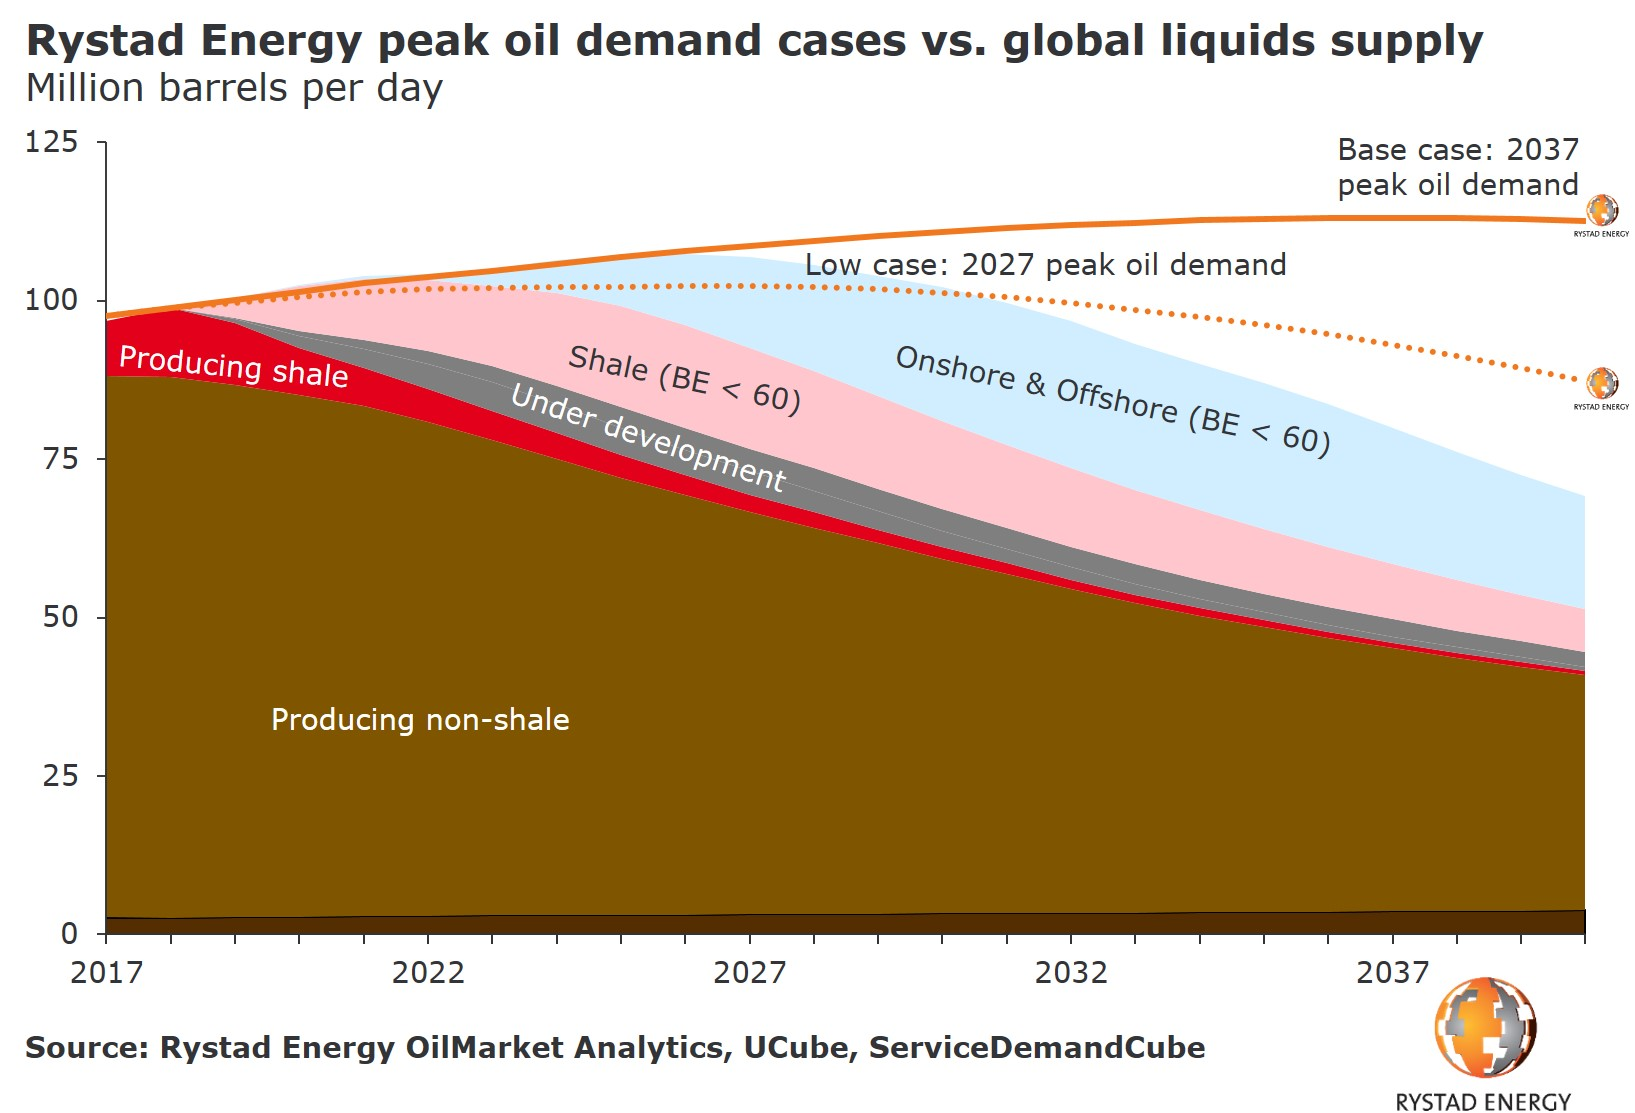 A graph showing Rystad Energy peak oil demand cases vs. global liquids supply in Million barrels per day from 2017 to 2037. Source: Rystad Energy OilMarket Analytics